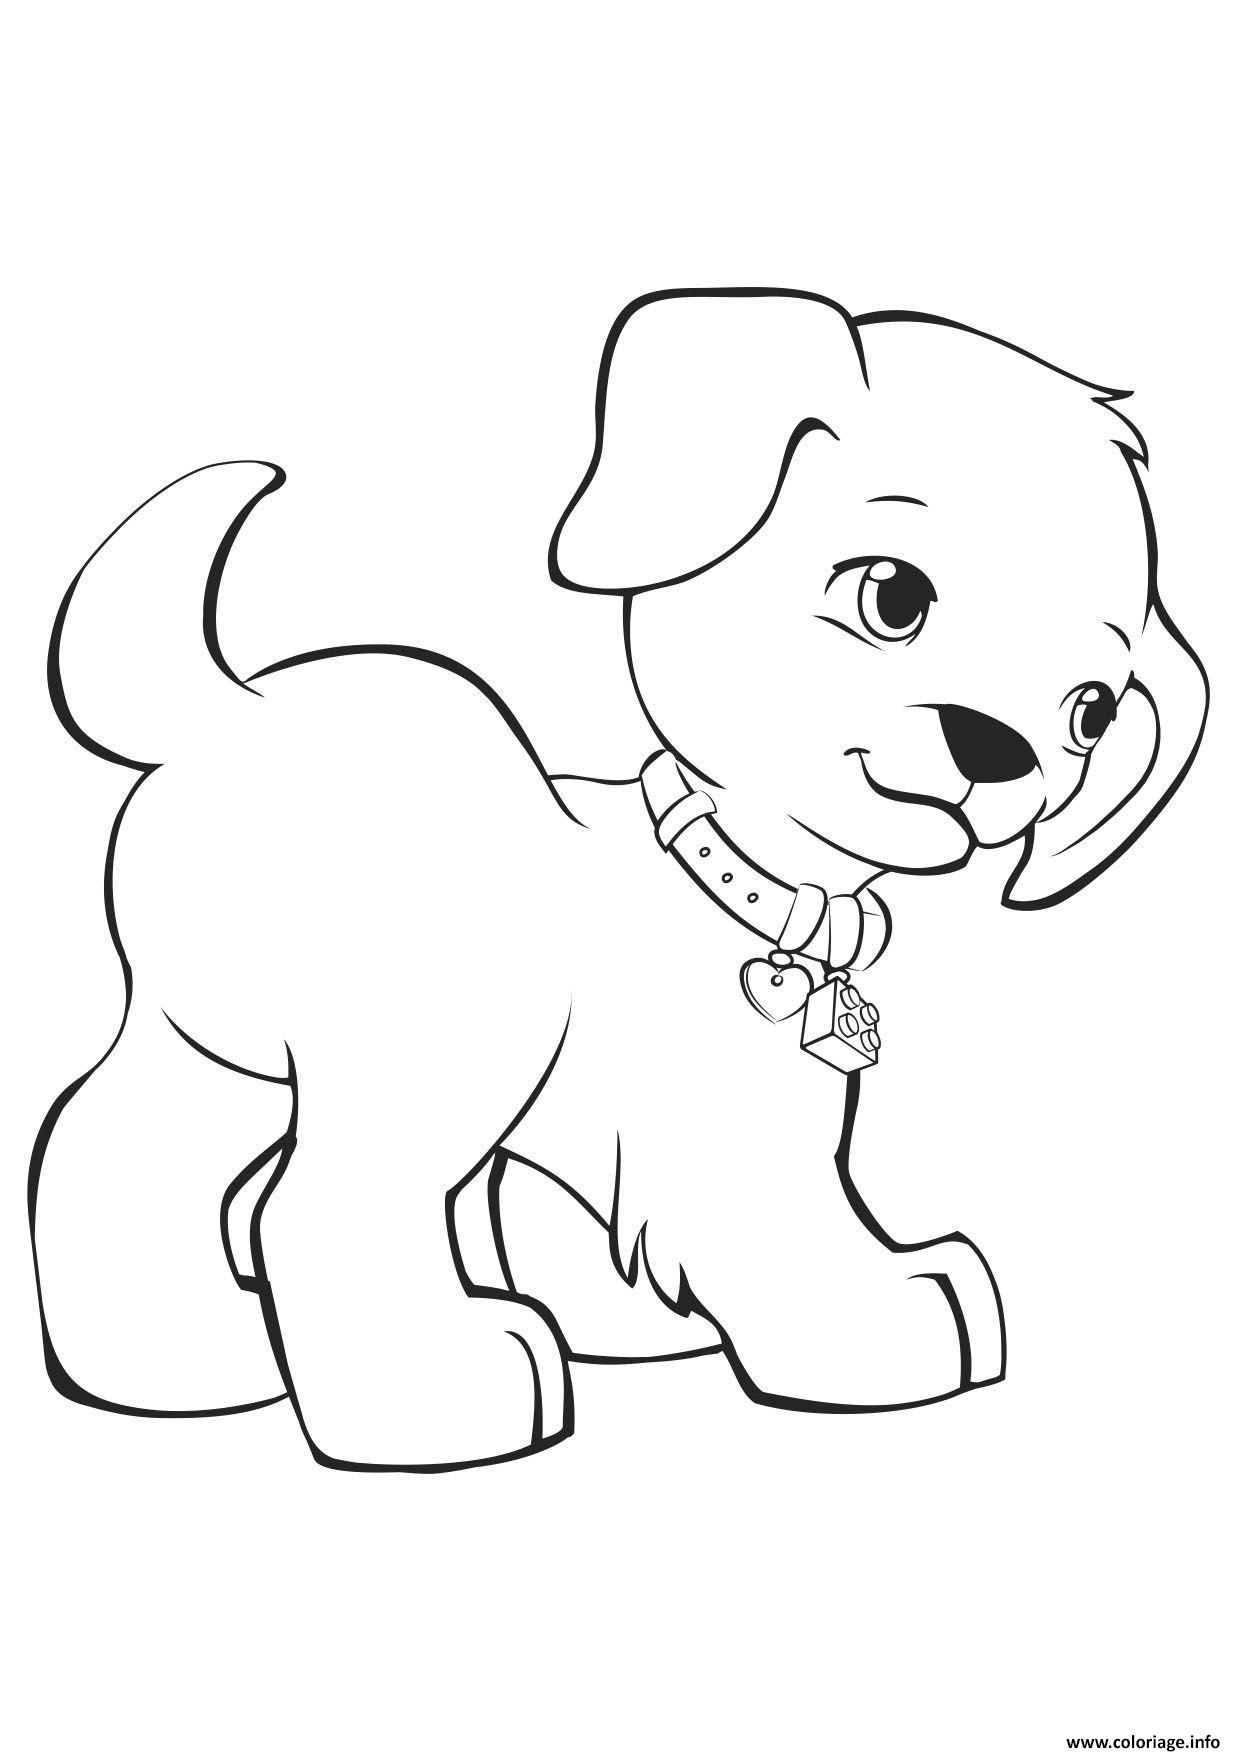 Coloriage Friends Chien Jecolorie Com